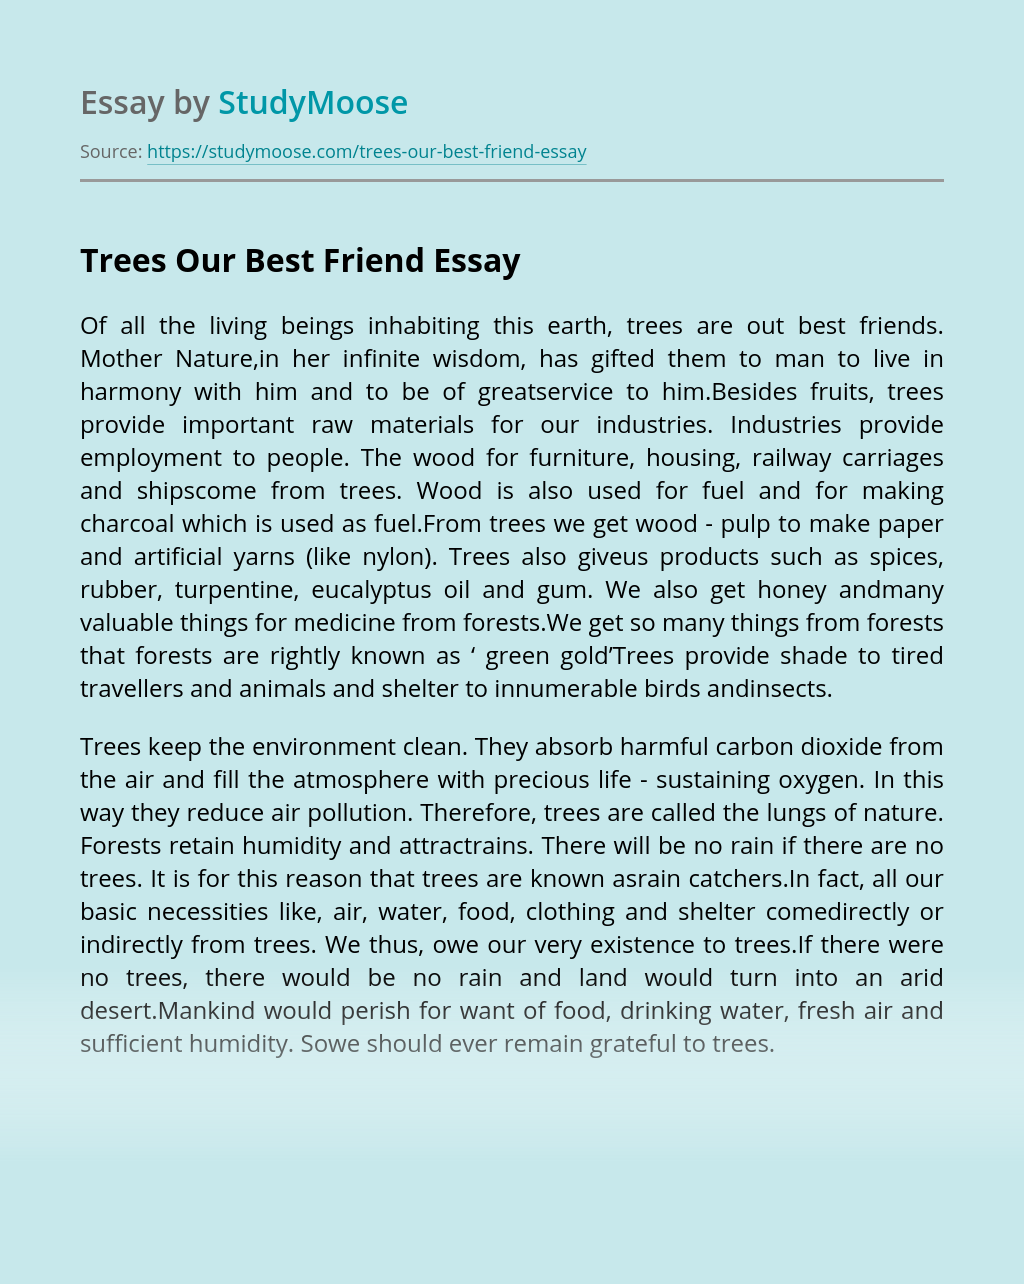 Trees Our Best Friend